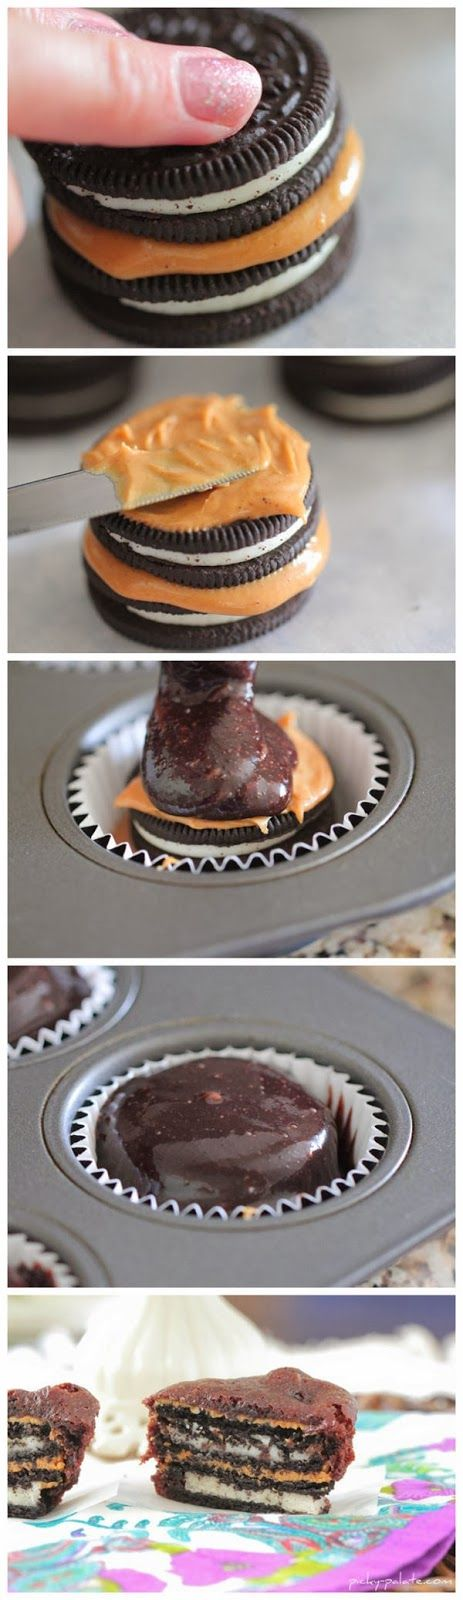 Oreo and Peanut Butter Brownie Cakes Recipe -- maybe try this for a holiday so other people eat it ;)